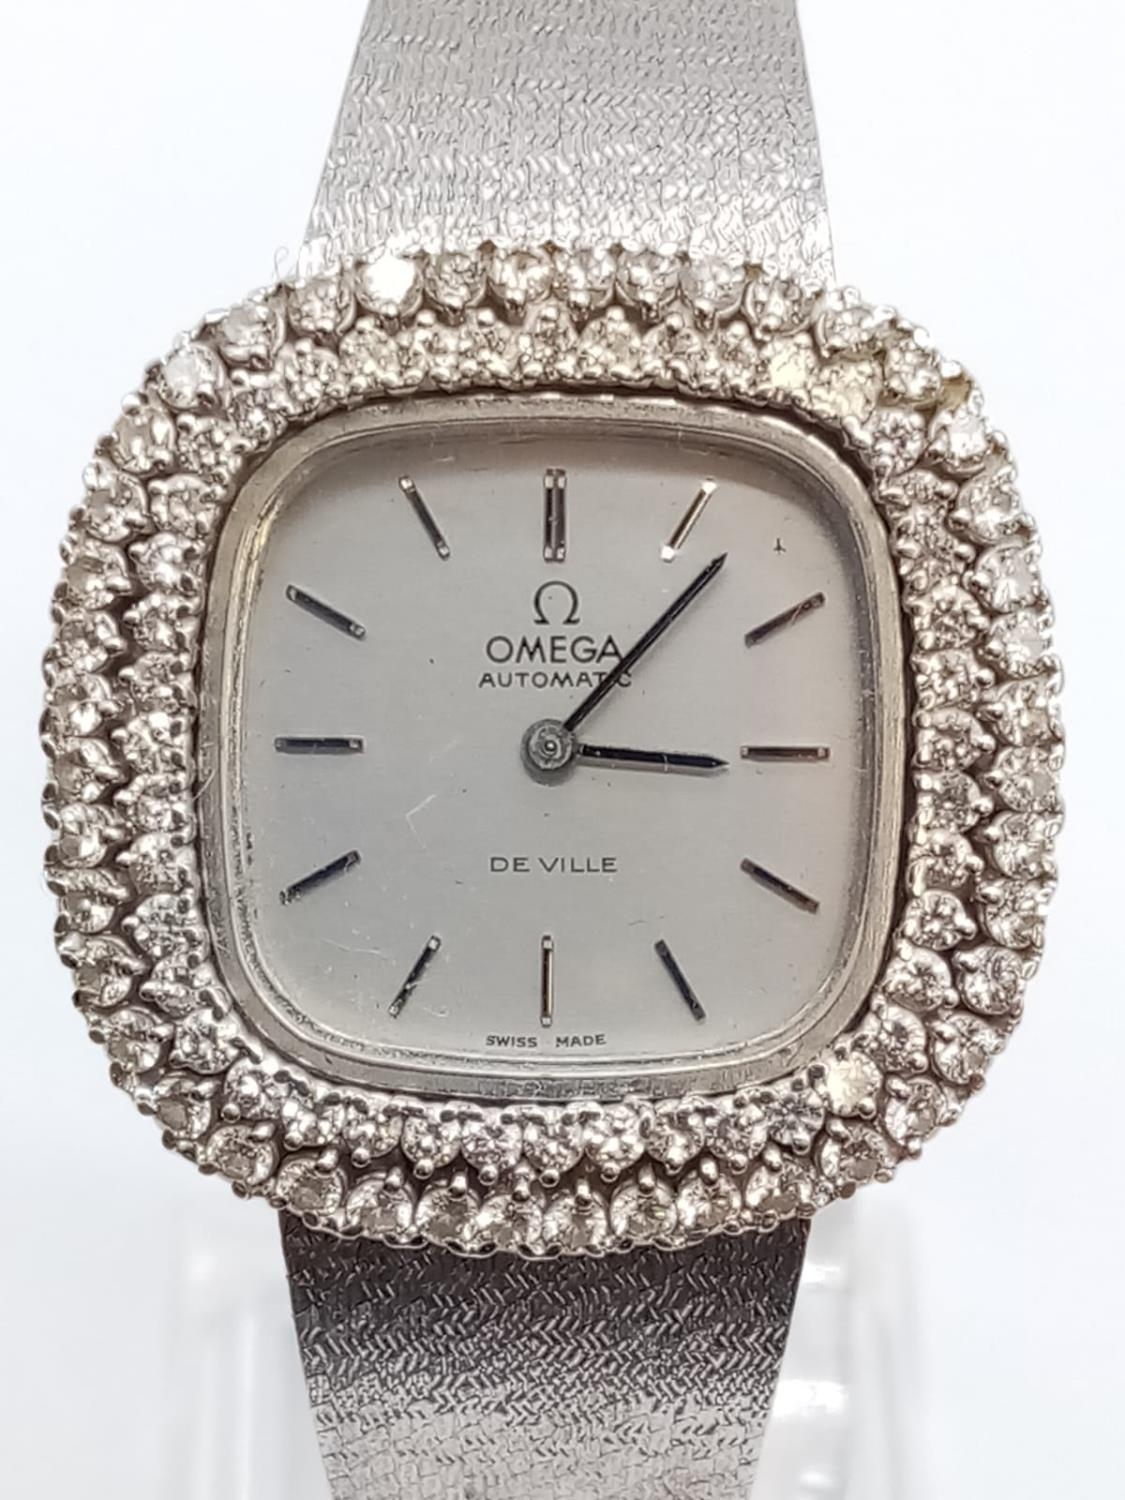 Vintage 18ct white gold OMEGA de Ville ladies automatic watch, square face with diamond encrusted - Image 2 of 7